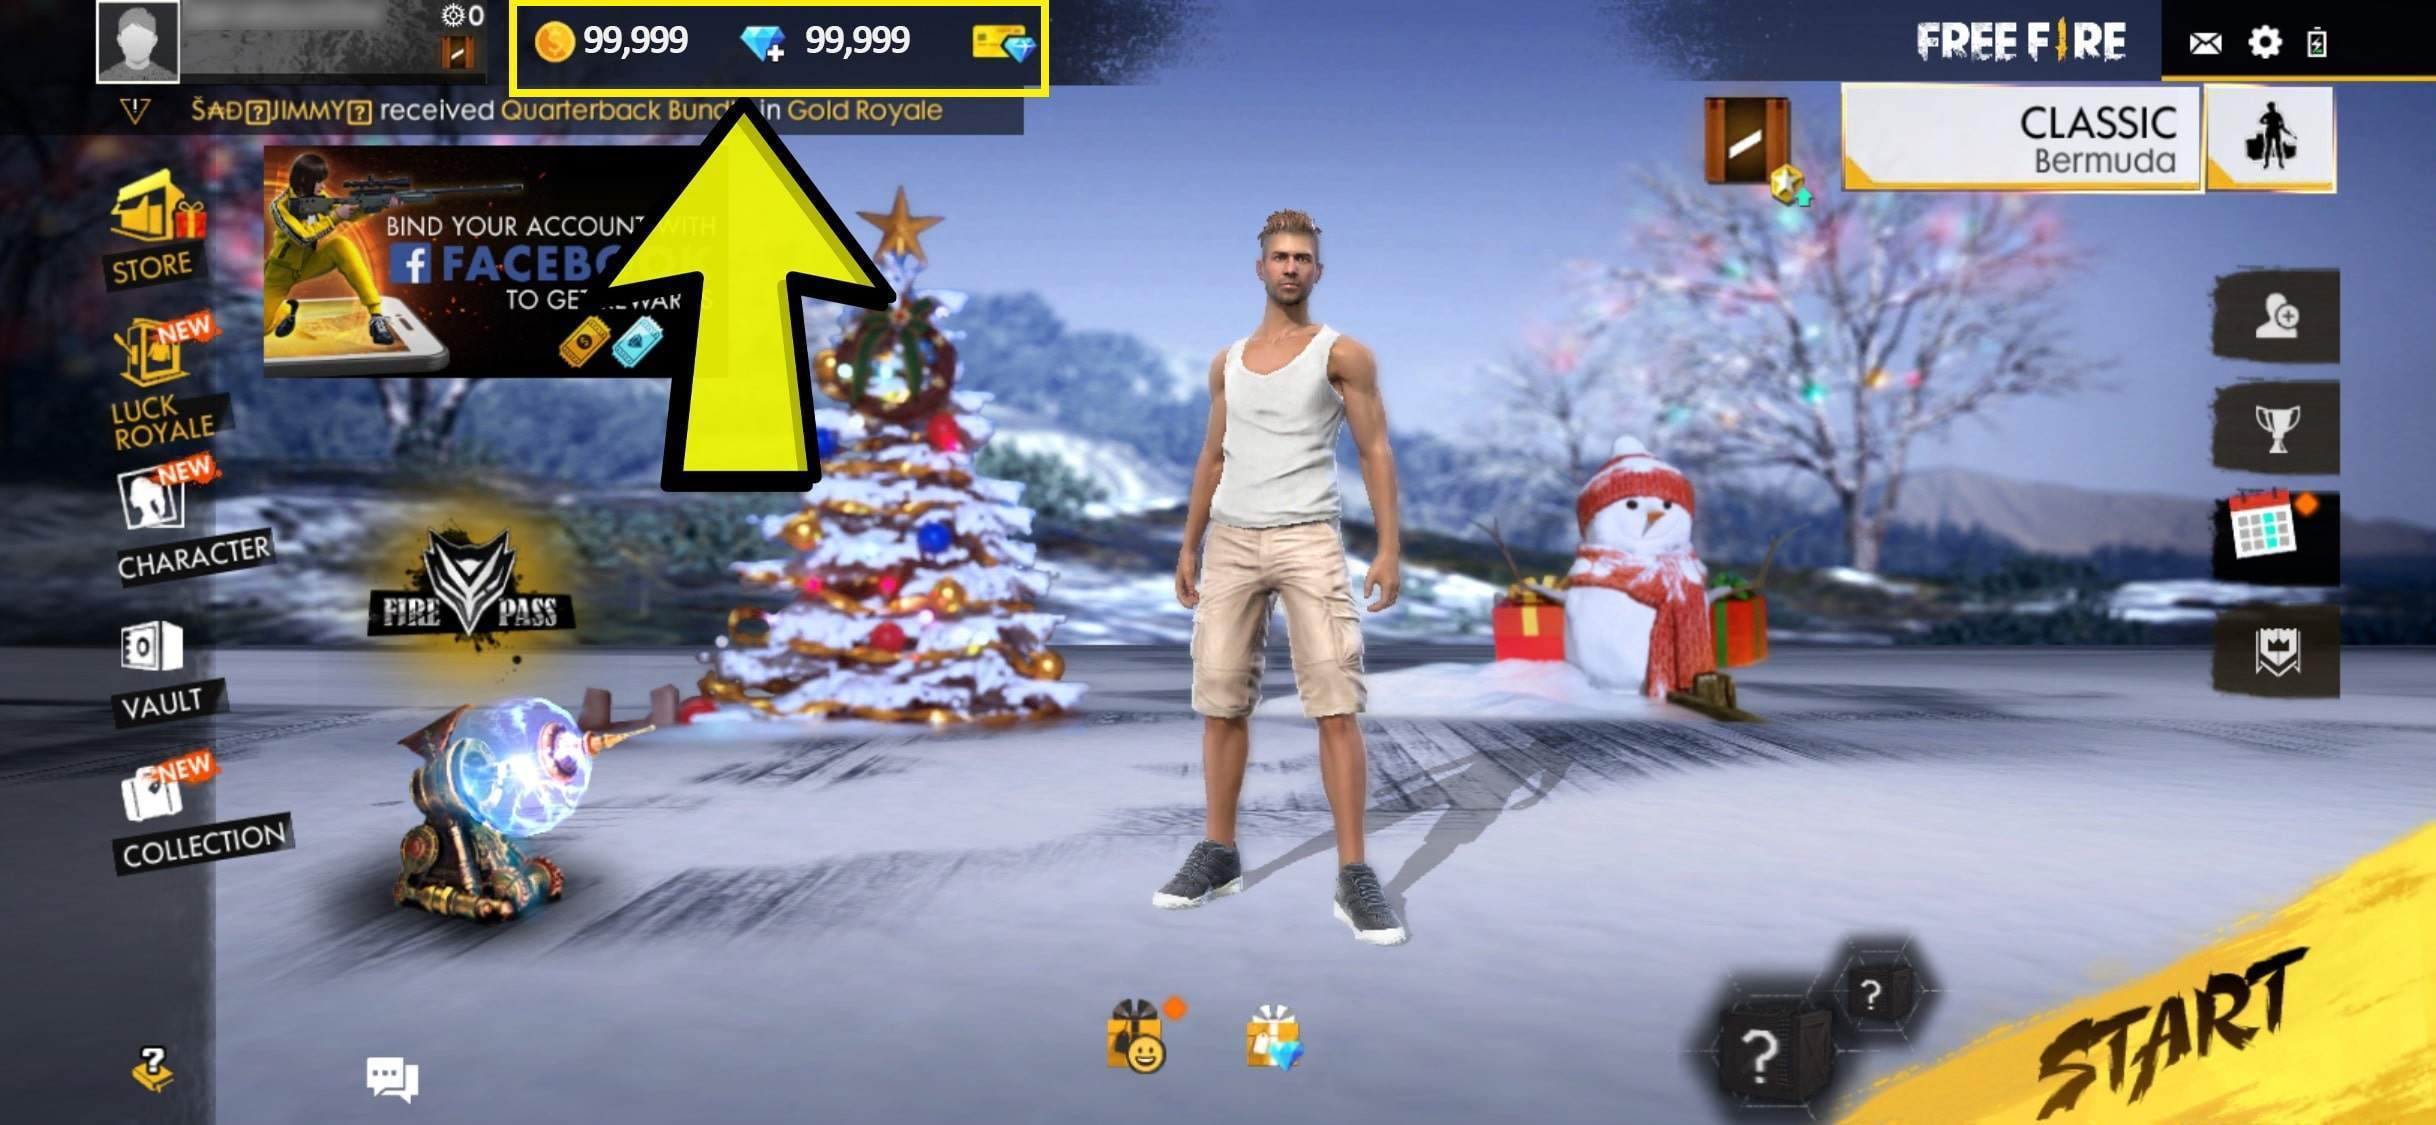 Claim Freefire Unlimited Coins and Diamonds For Free! Tested [18 Oct 2020]